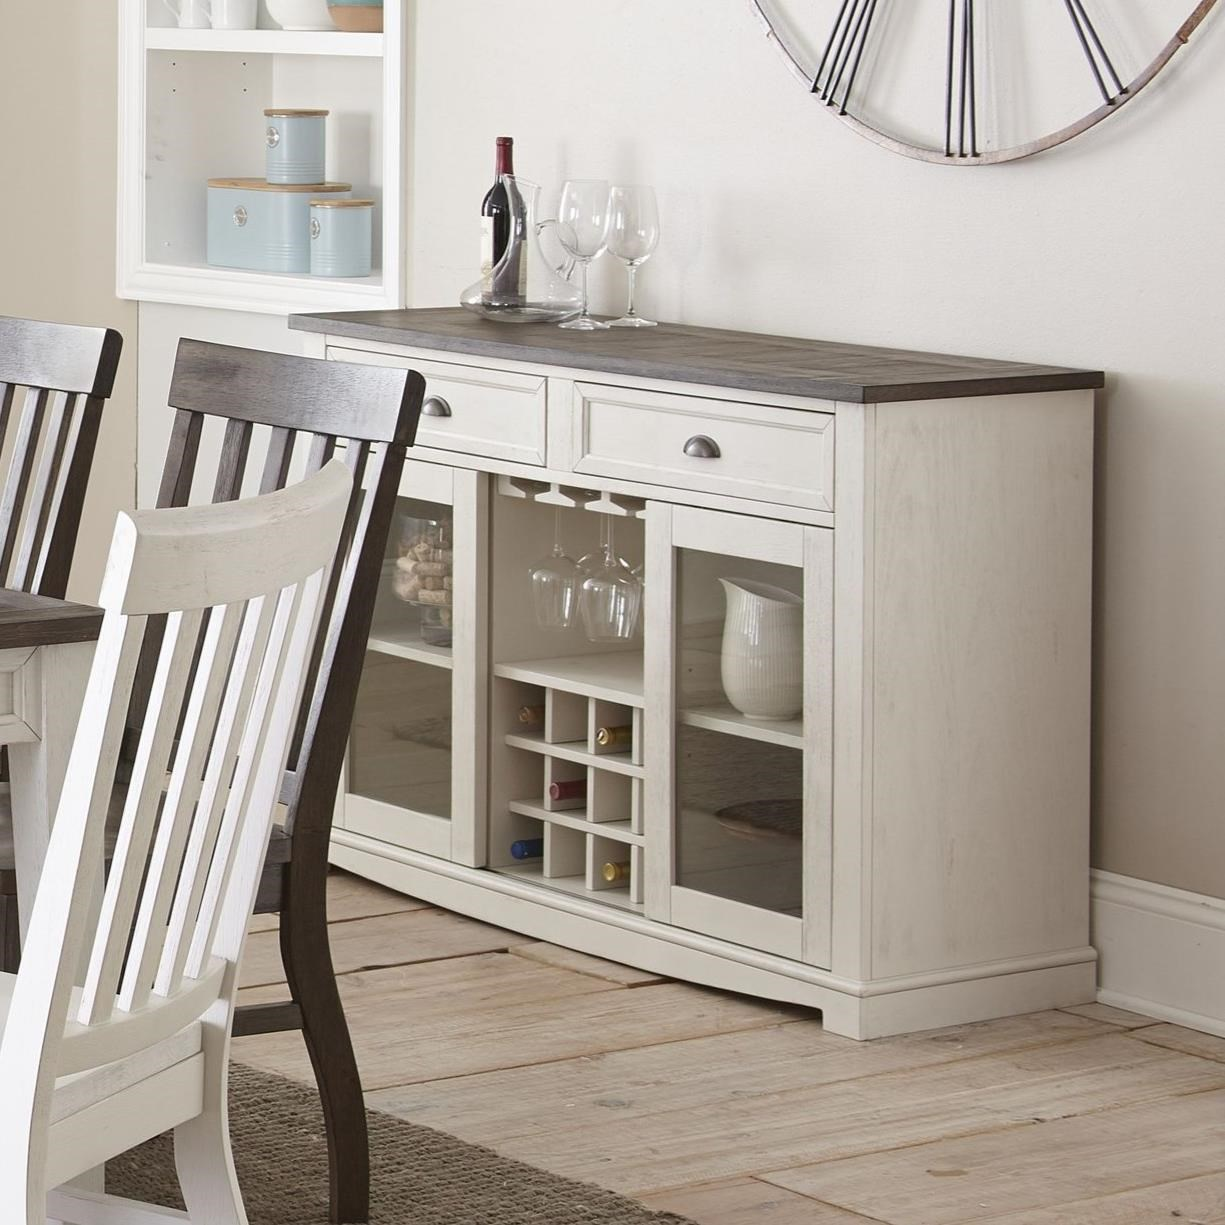 Cayla Server by Steve Silver at Wilcox Furniture